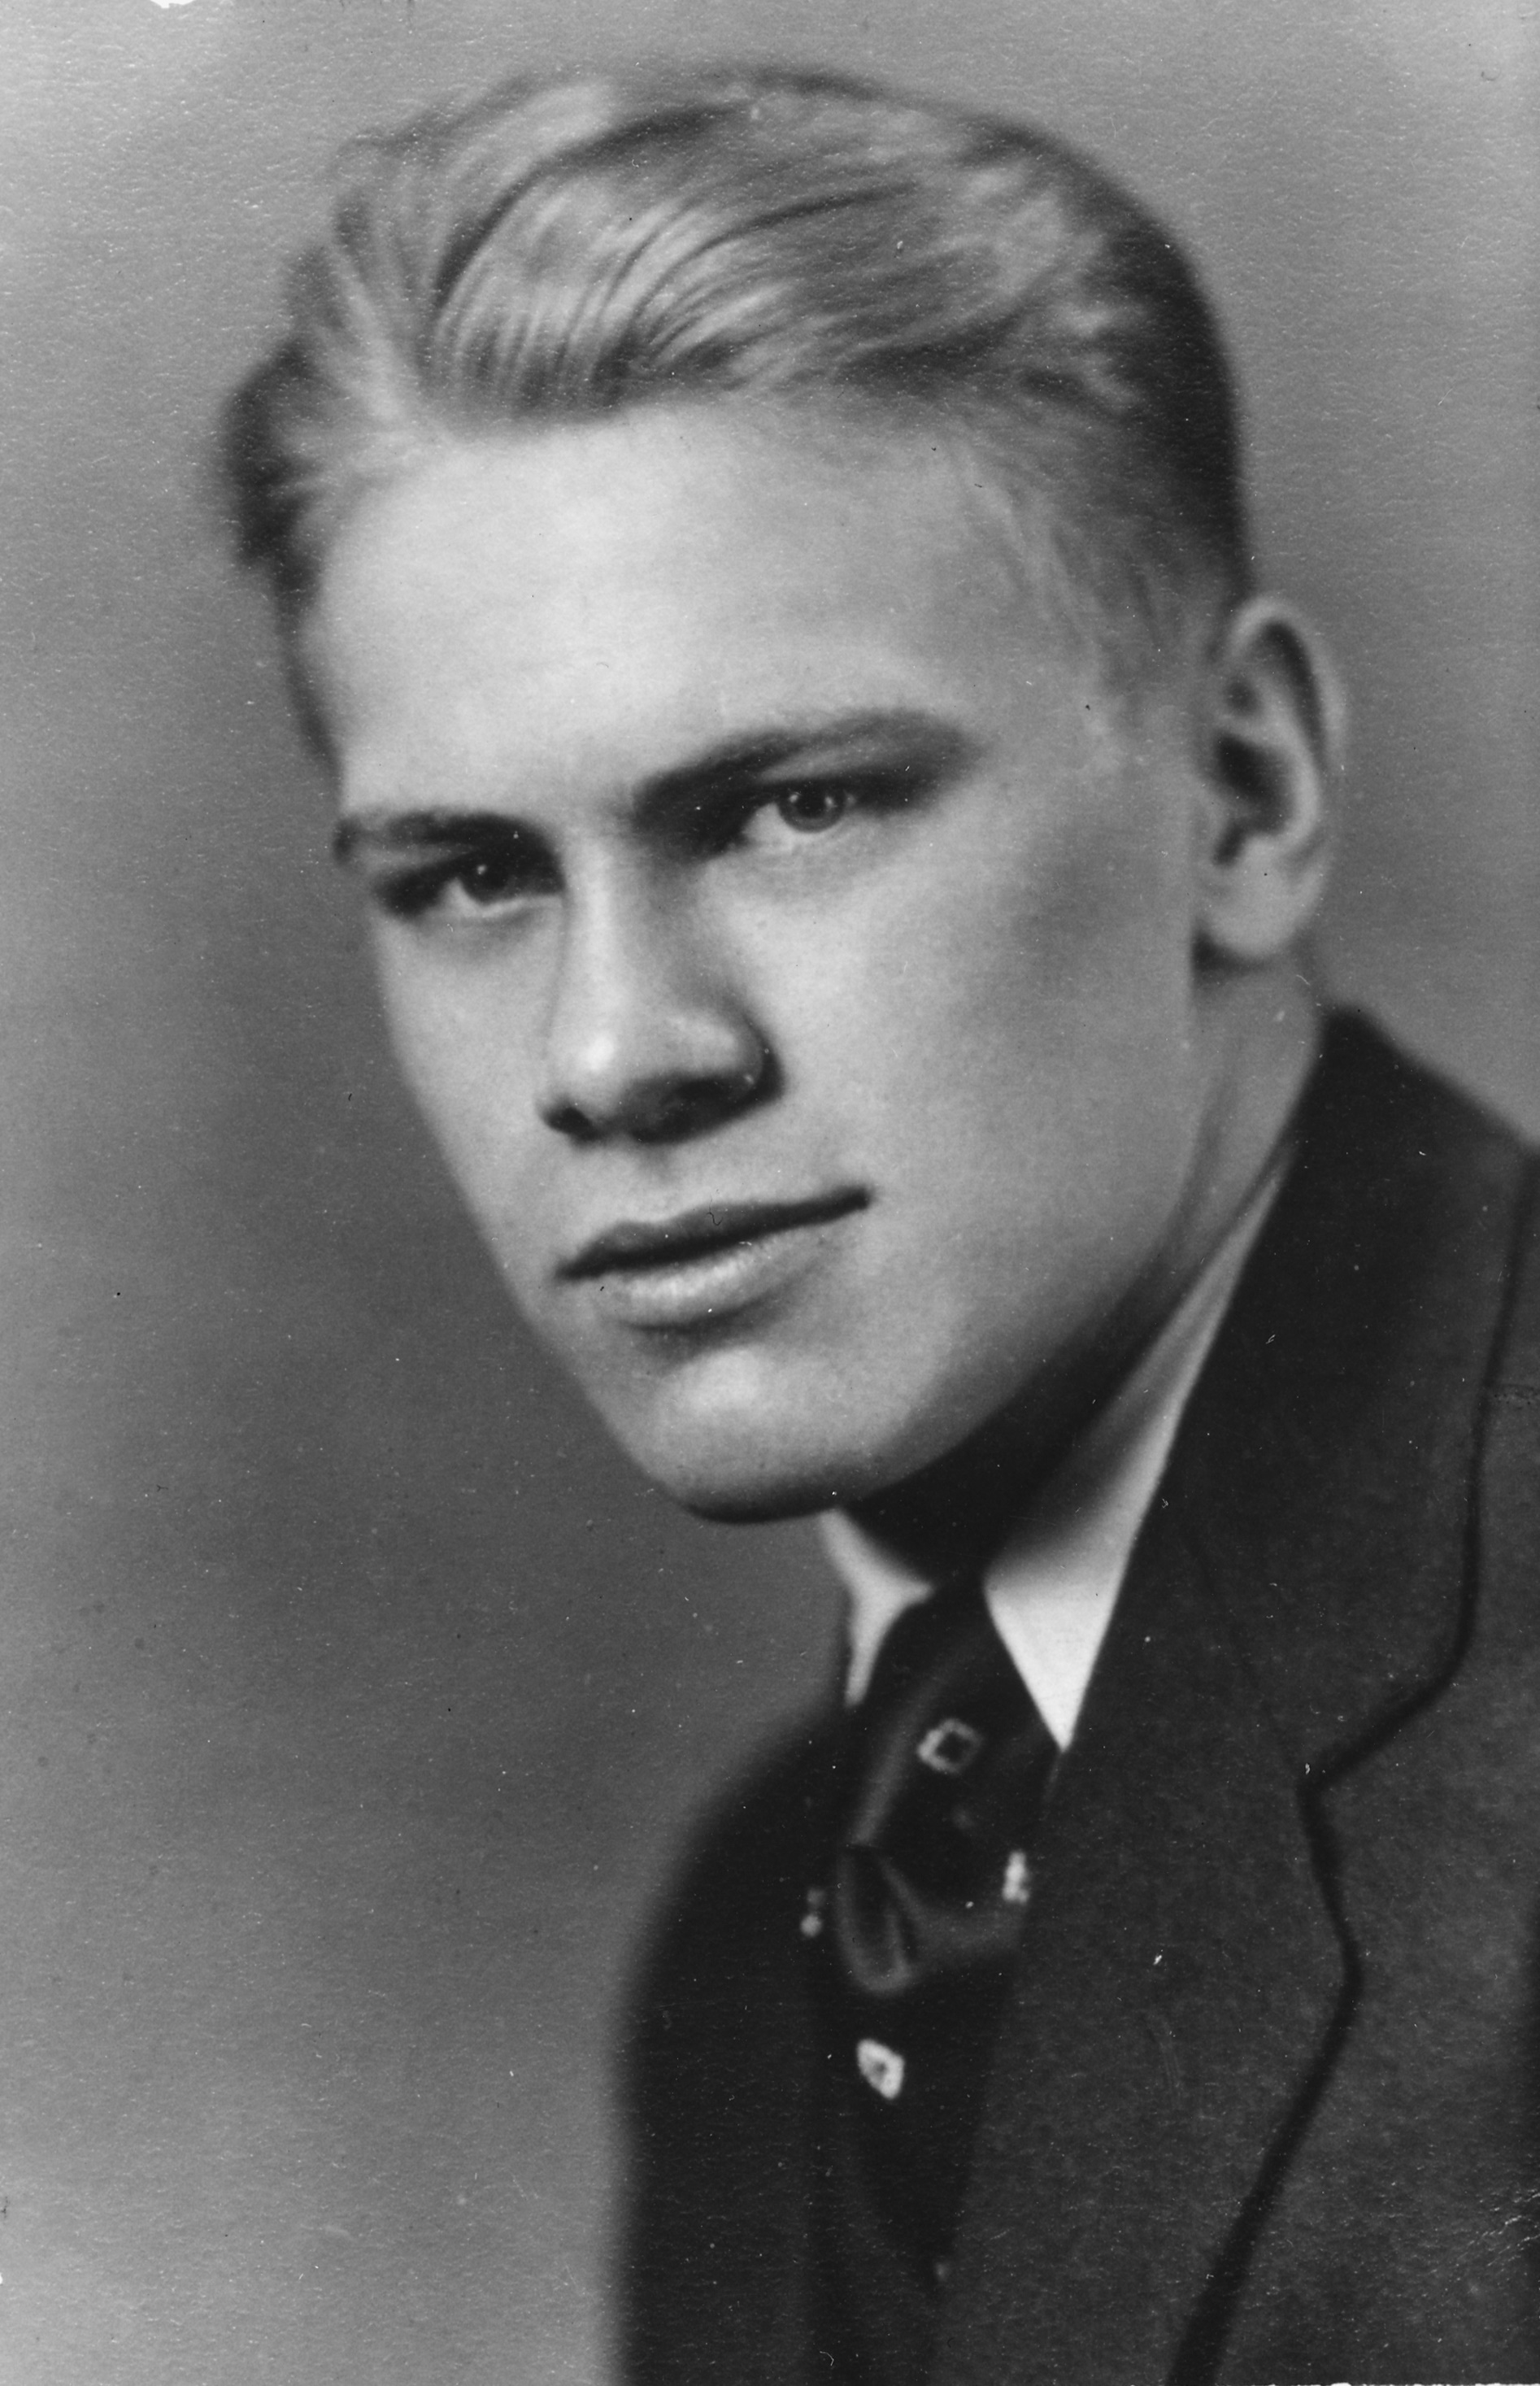 File Gerald Ford Hs Graduation Portrait 1931 Jpg